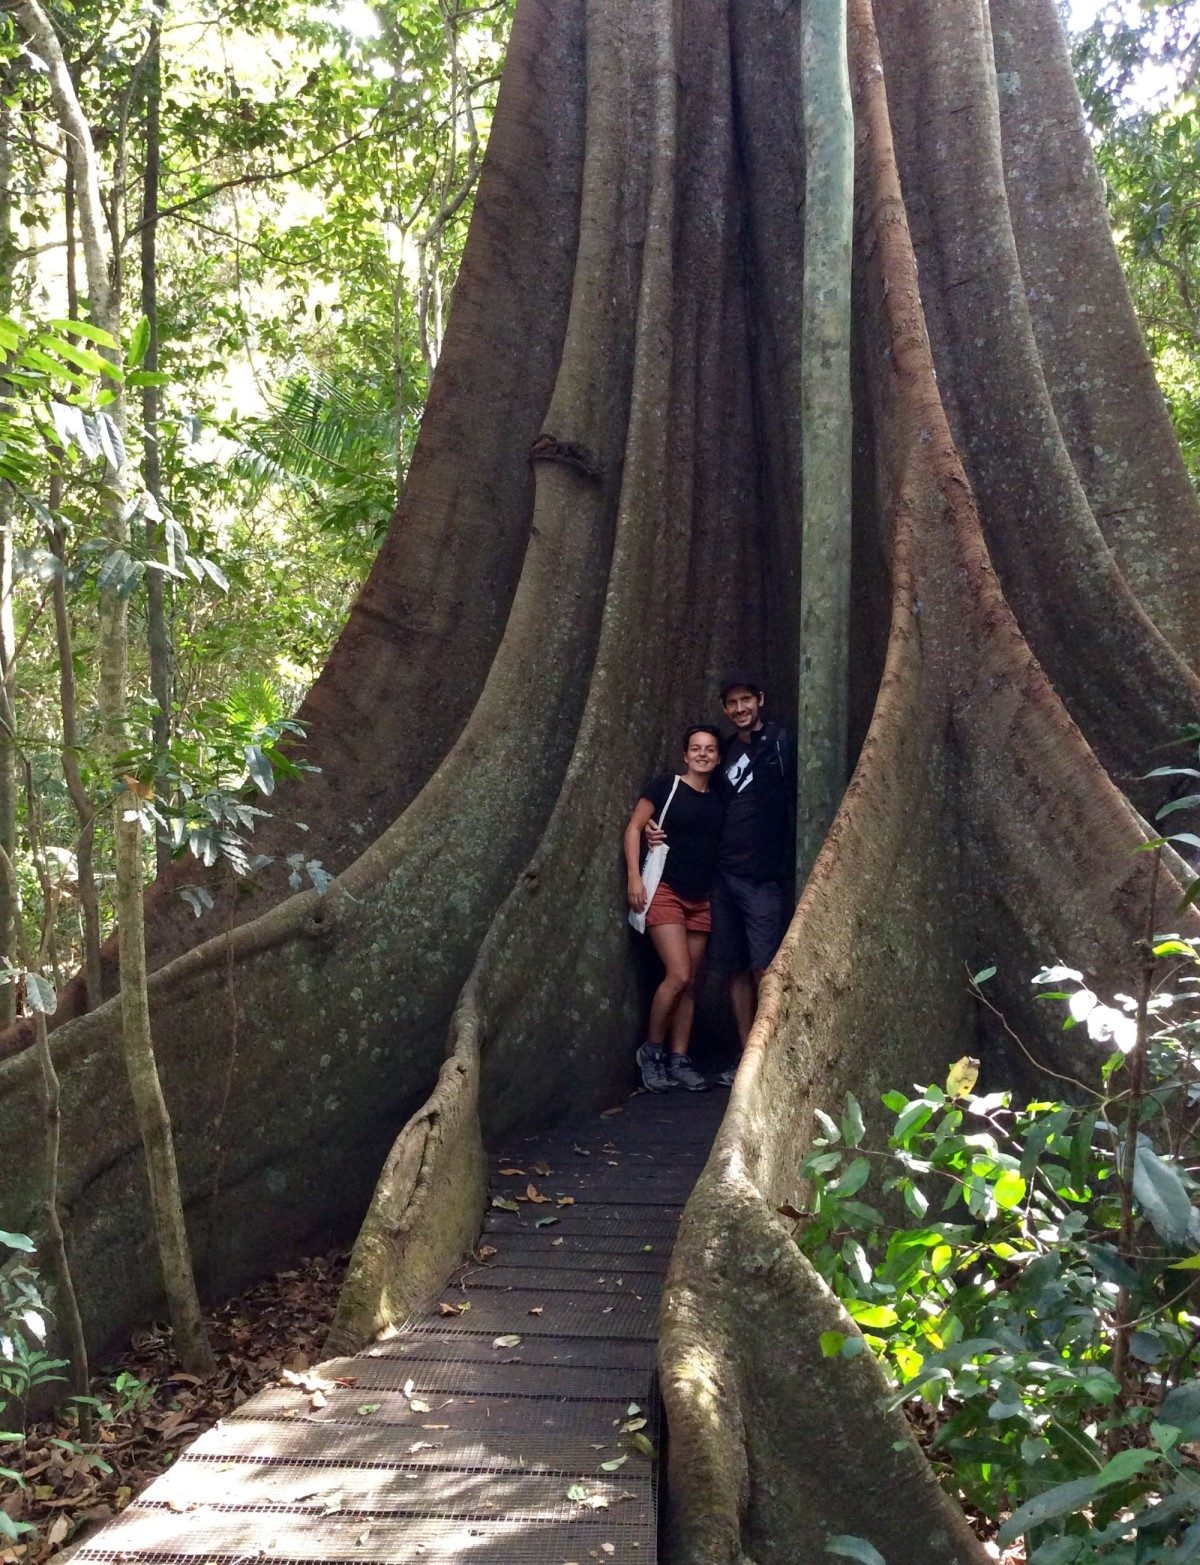 Fig-Tree-Walk-Australien-3